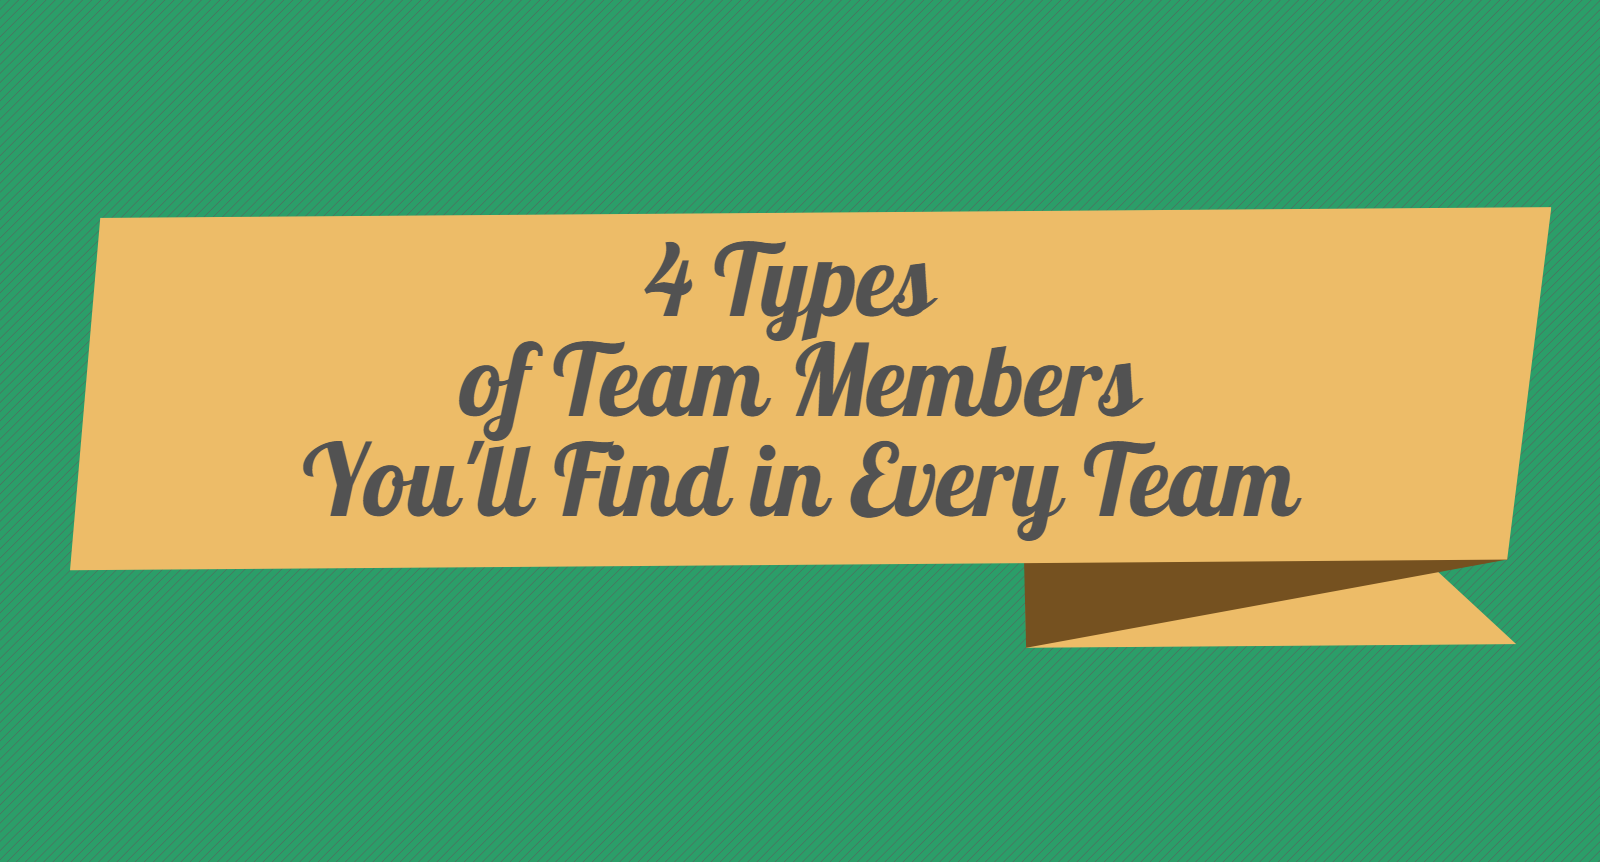 Four types of team members you will find in every team